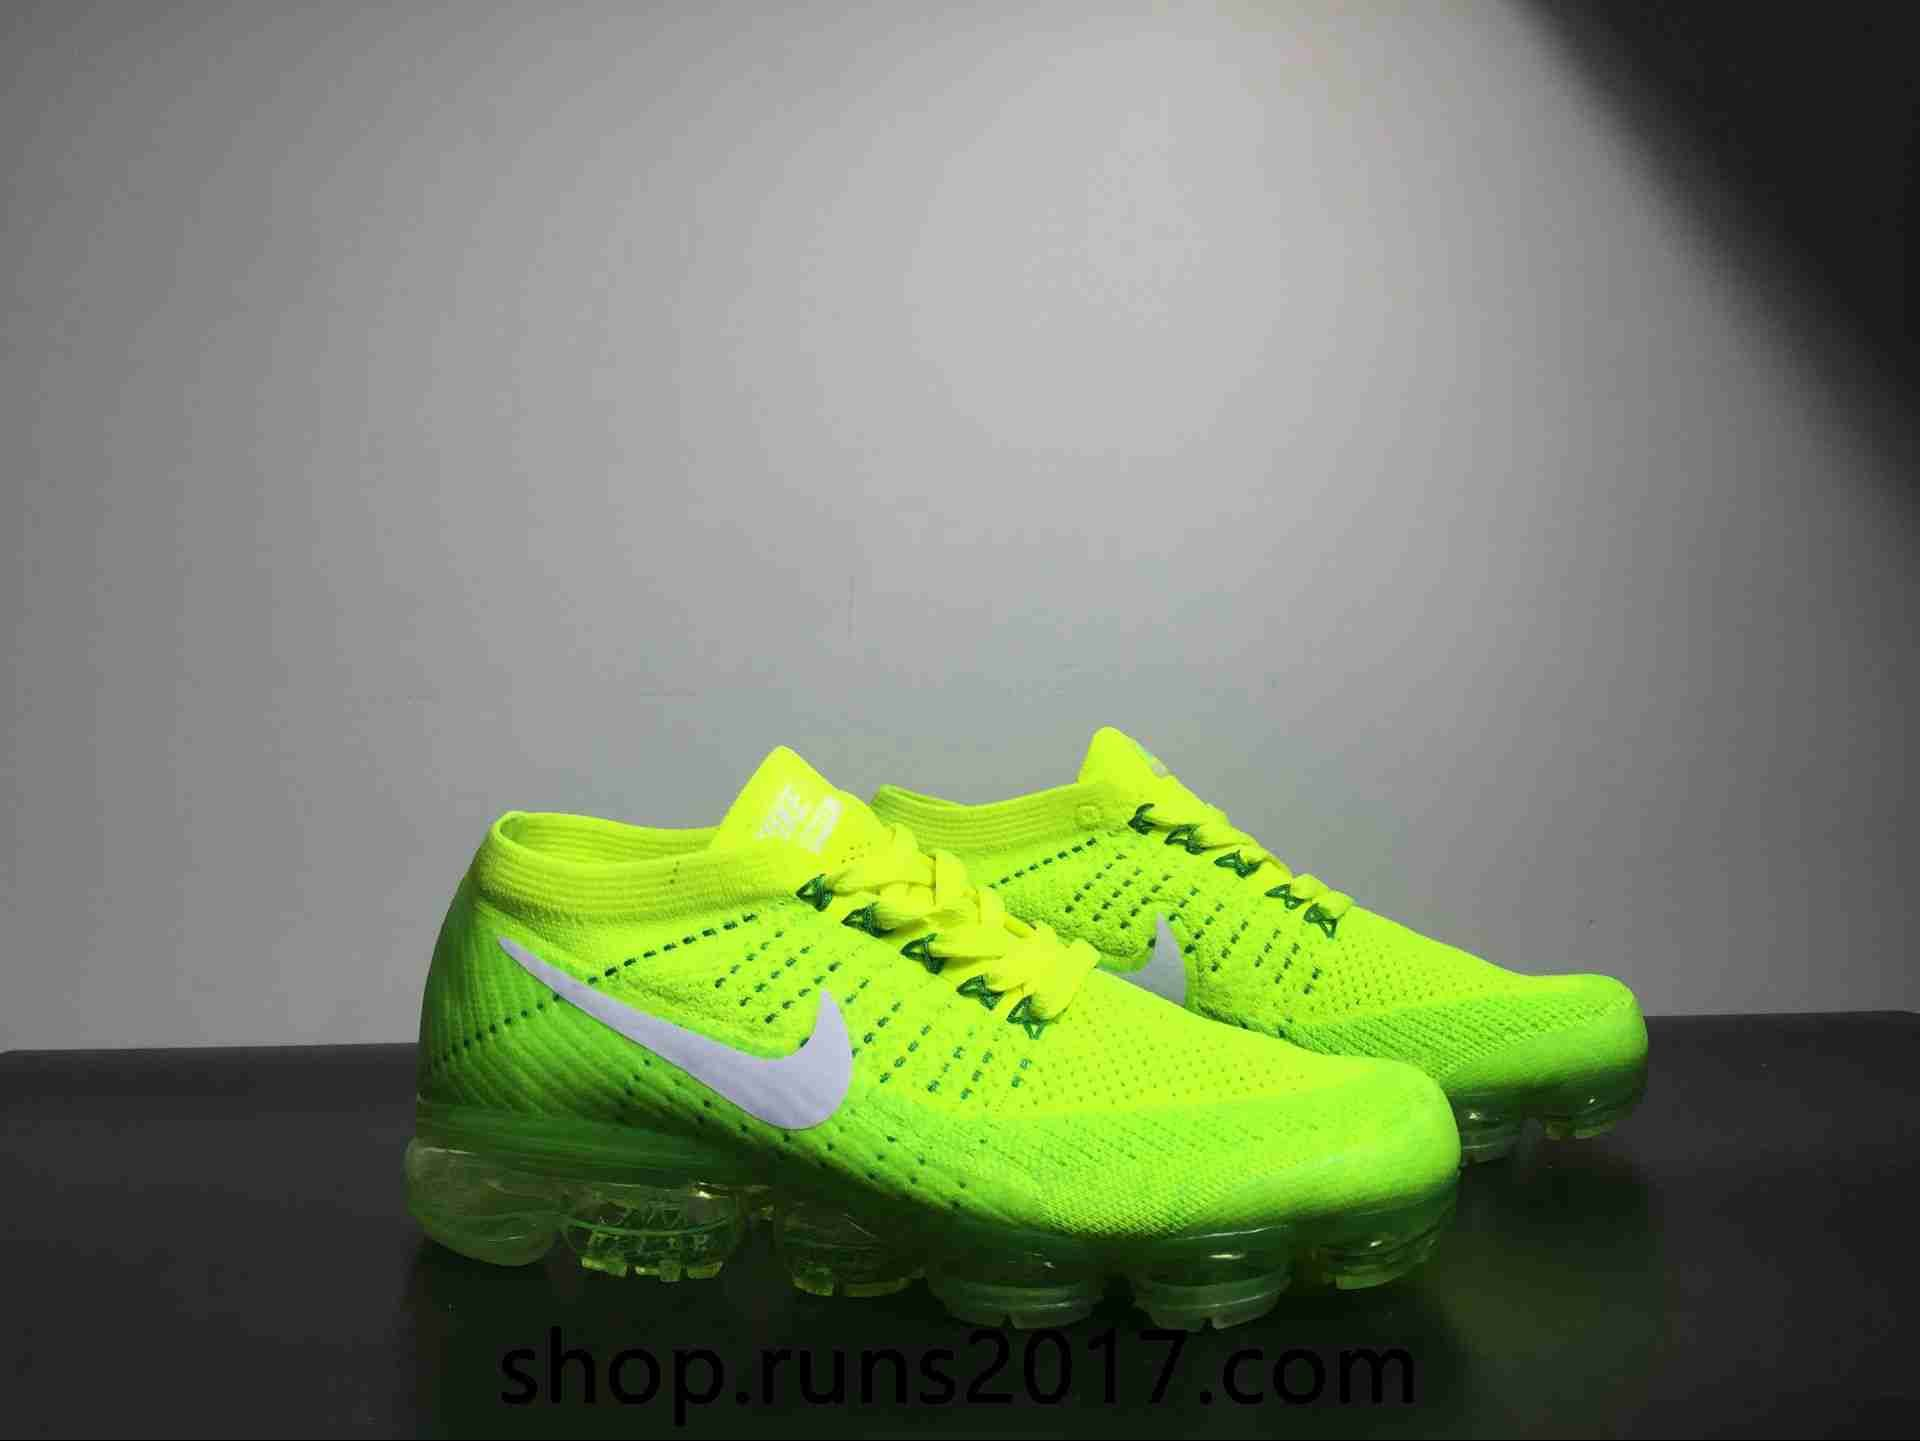 Nike Wear, Kicks Shoes, Green Shoes, Sports Shoes, Nike Air Max, Nike Free,  Athletic Clothes, Fashion Ideas, Footwear